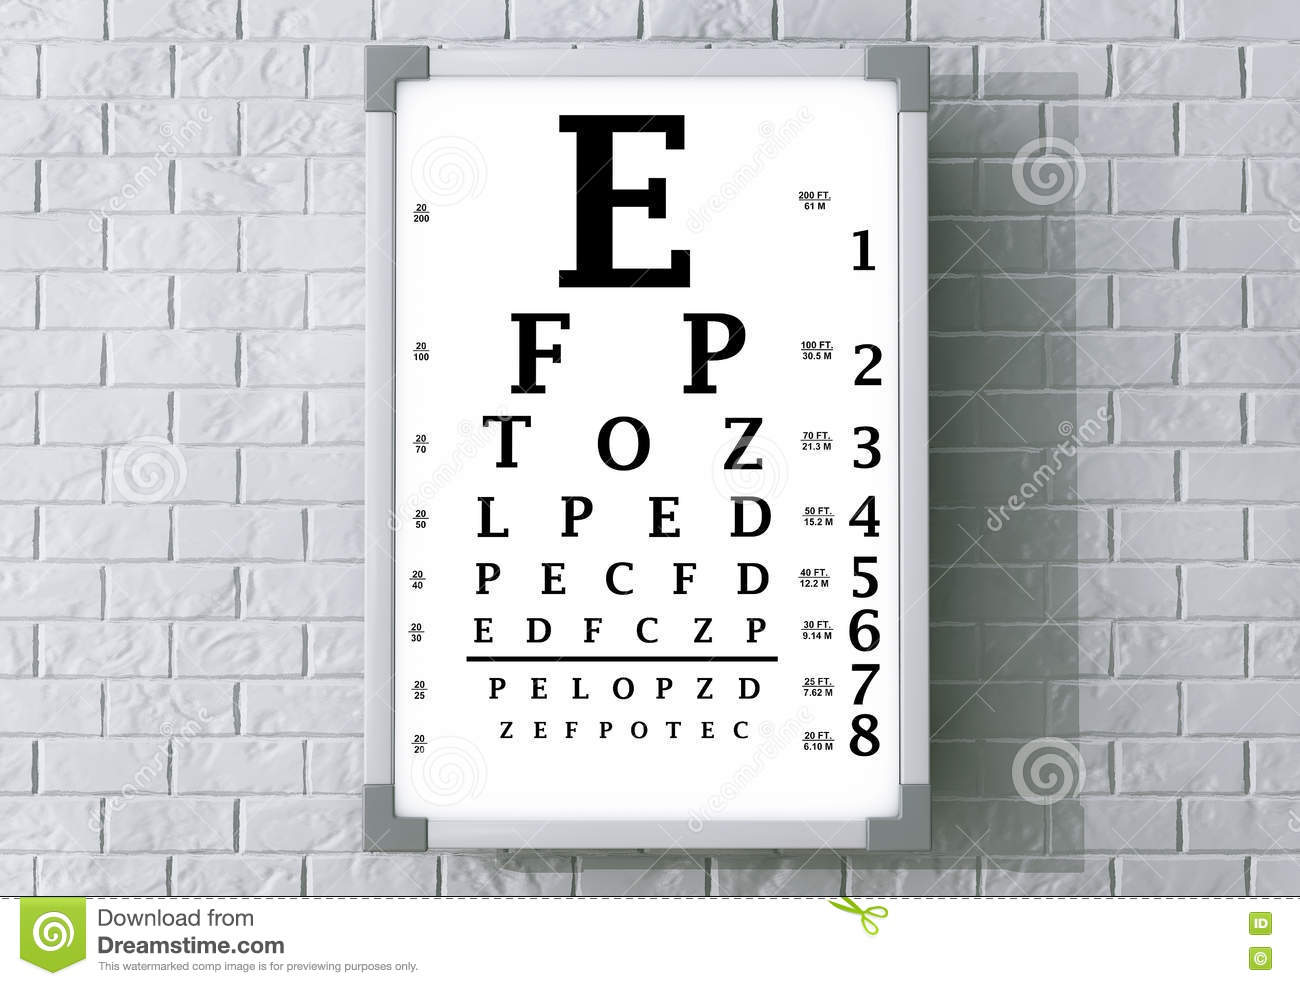 Snellen eye chart test box 3d rendering stock illustration snellen eye chart test box 3d rendering letters blindness royalty free illustration geenschuldenfo Choice Image